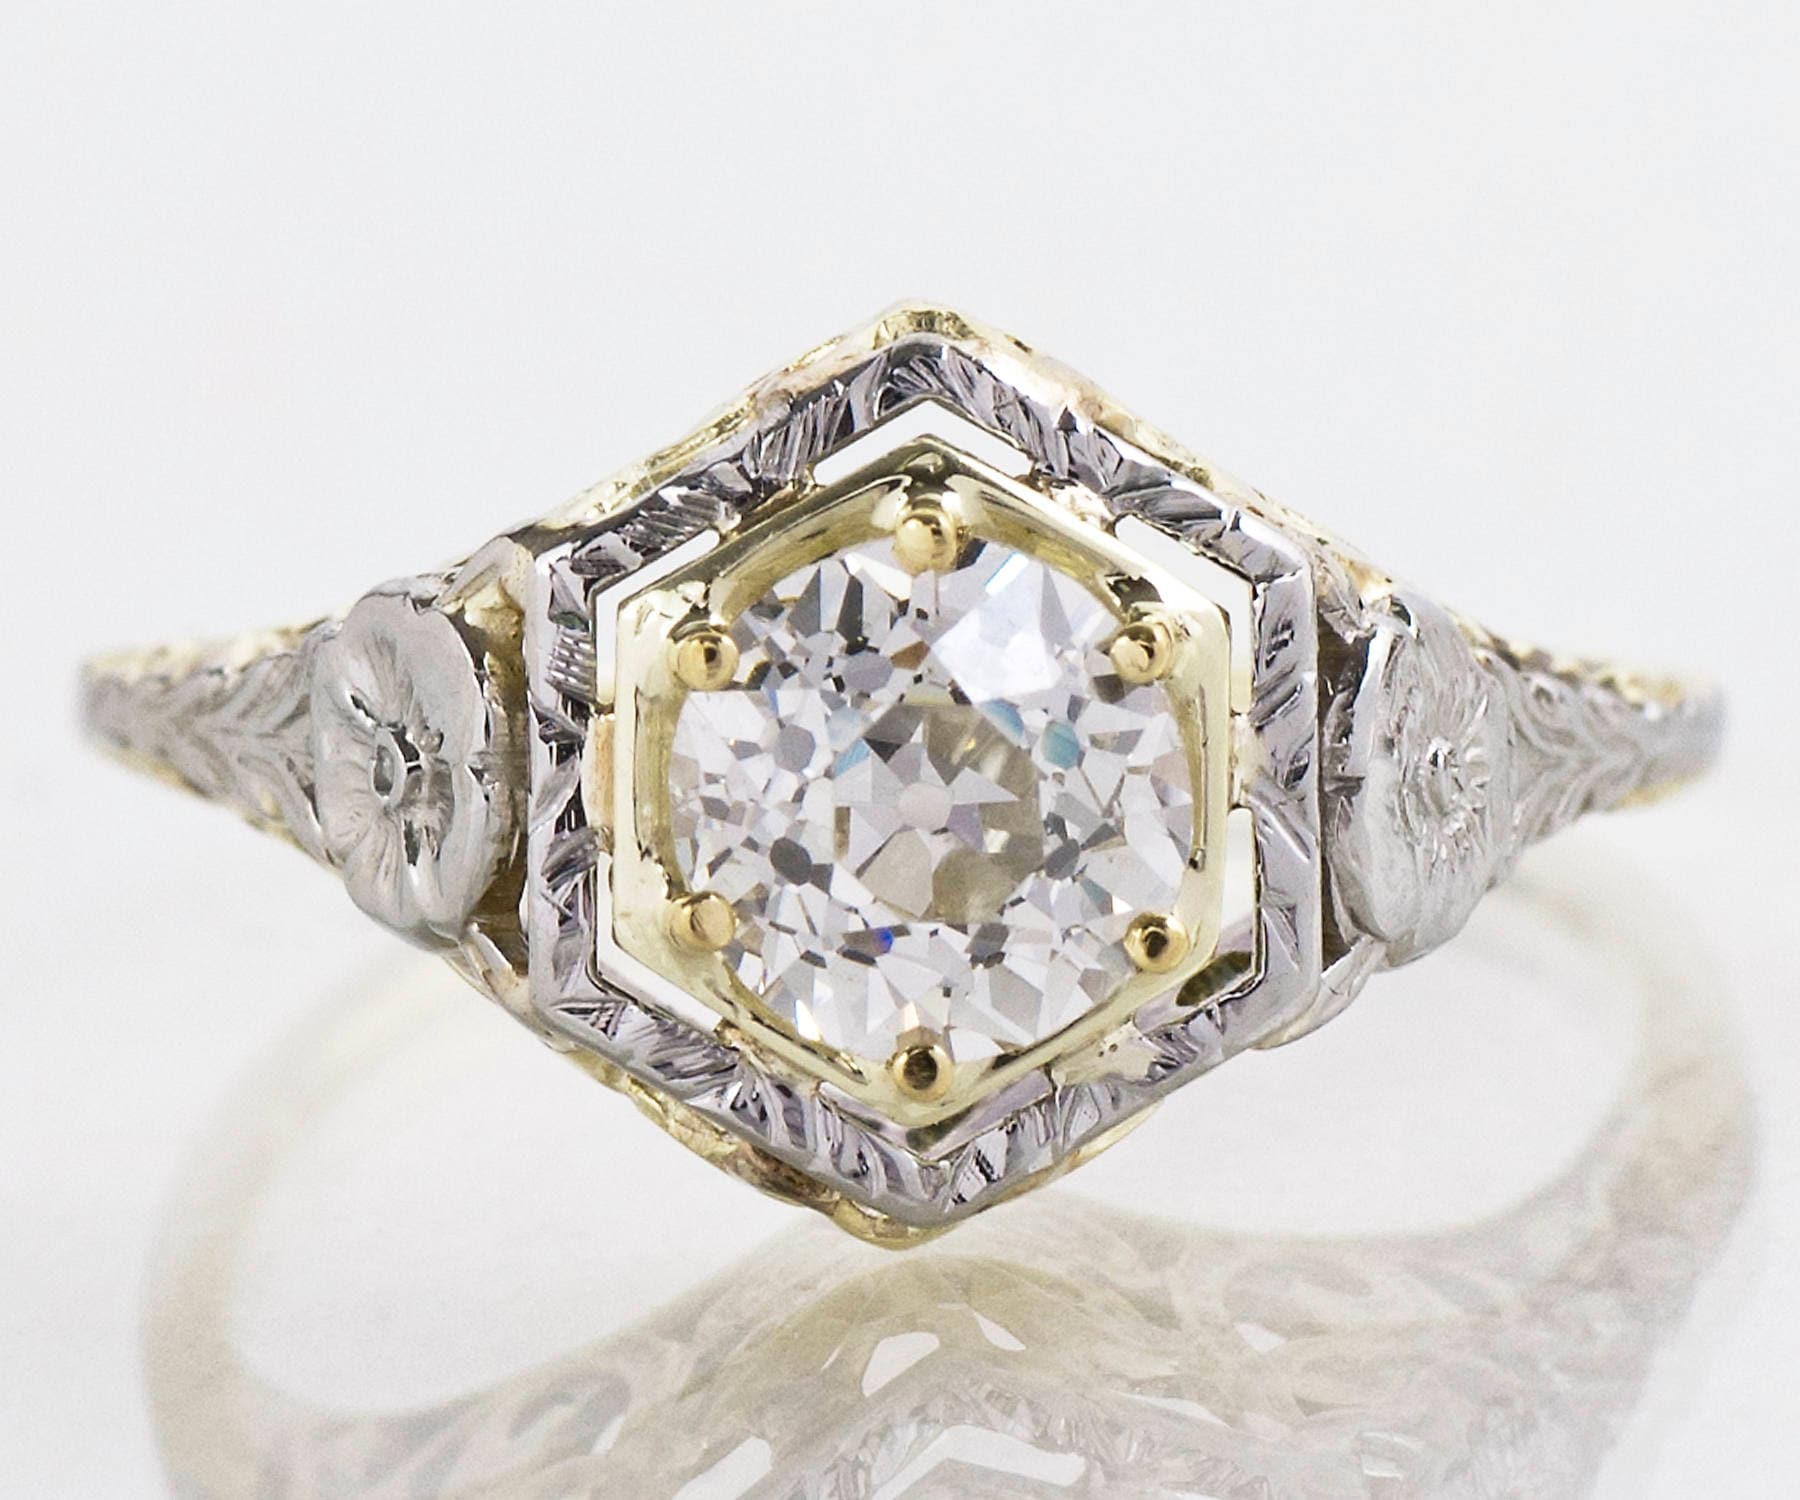 Antique Engagement Ring Antique Arts & Crafts Era Butterfly